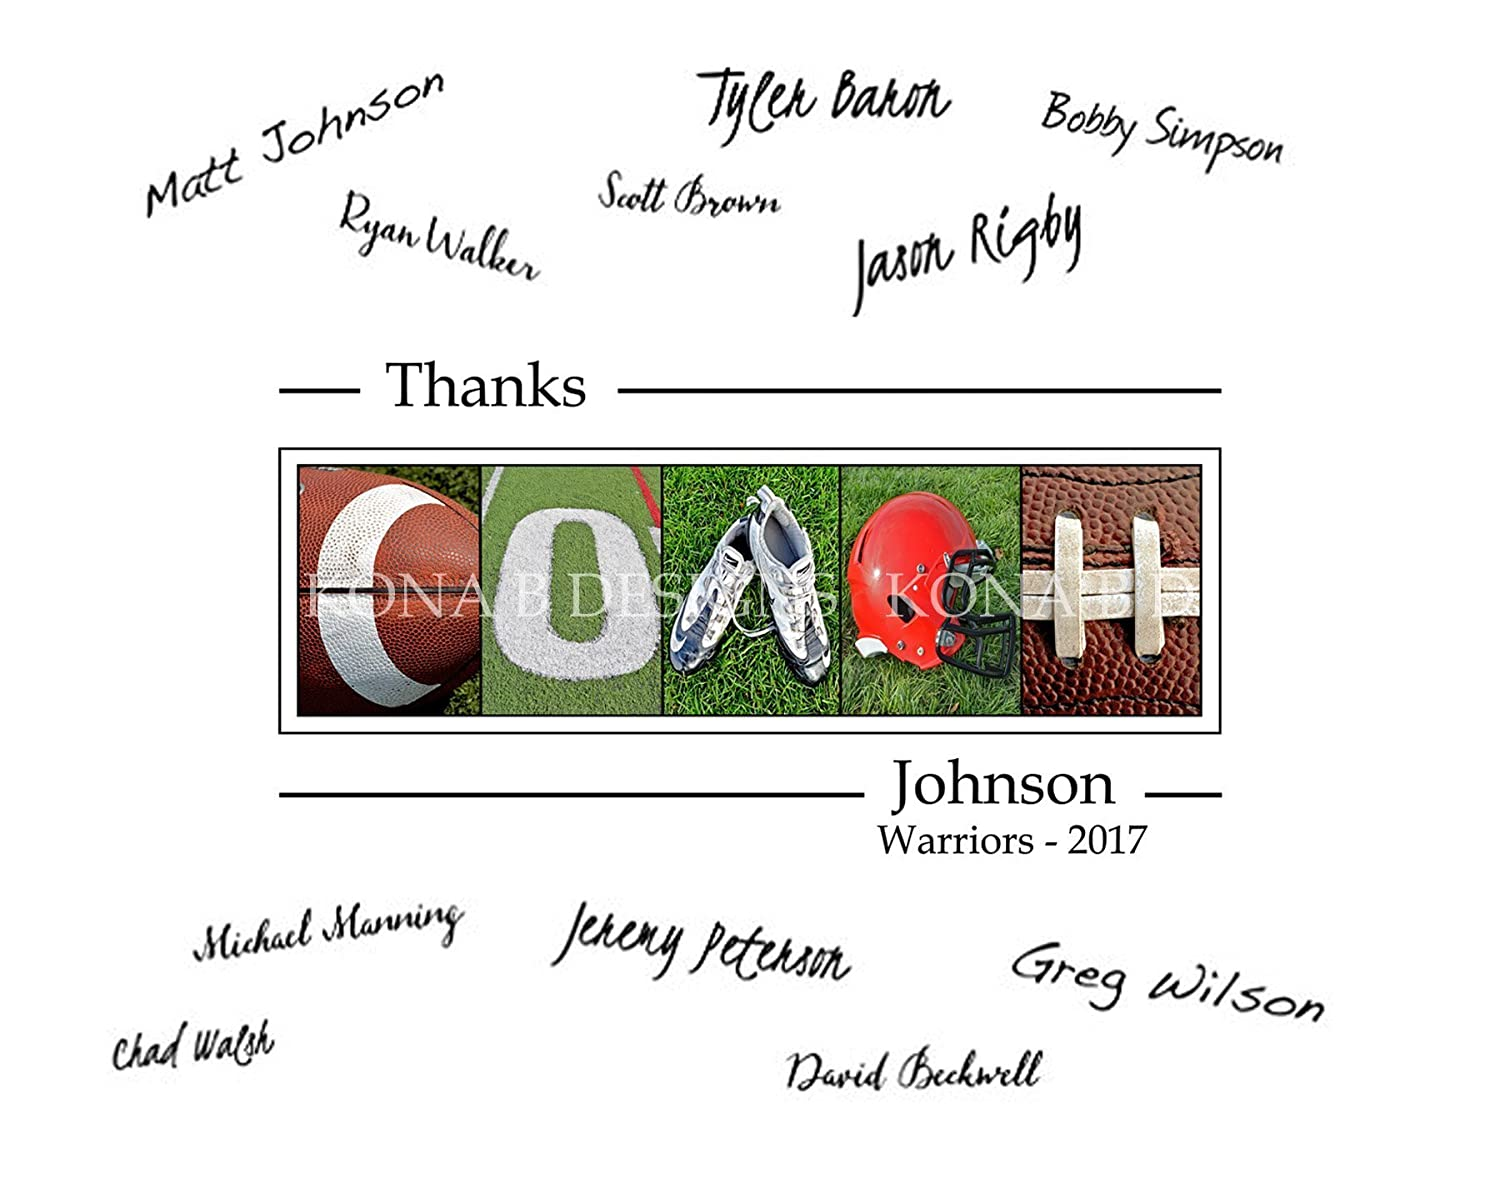 Football Coach's Gift with player's signatures - Gift for Football Coach - 11x14 with border for signatures